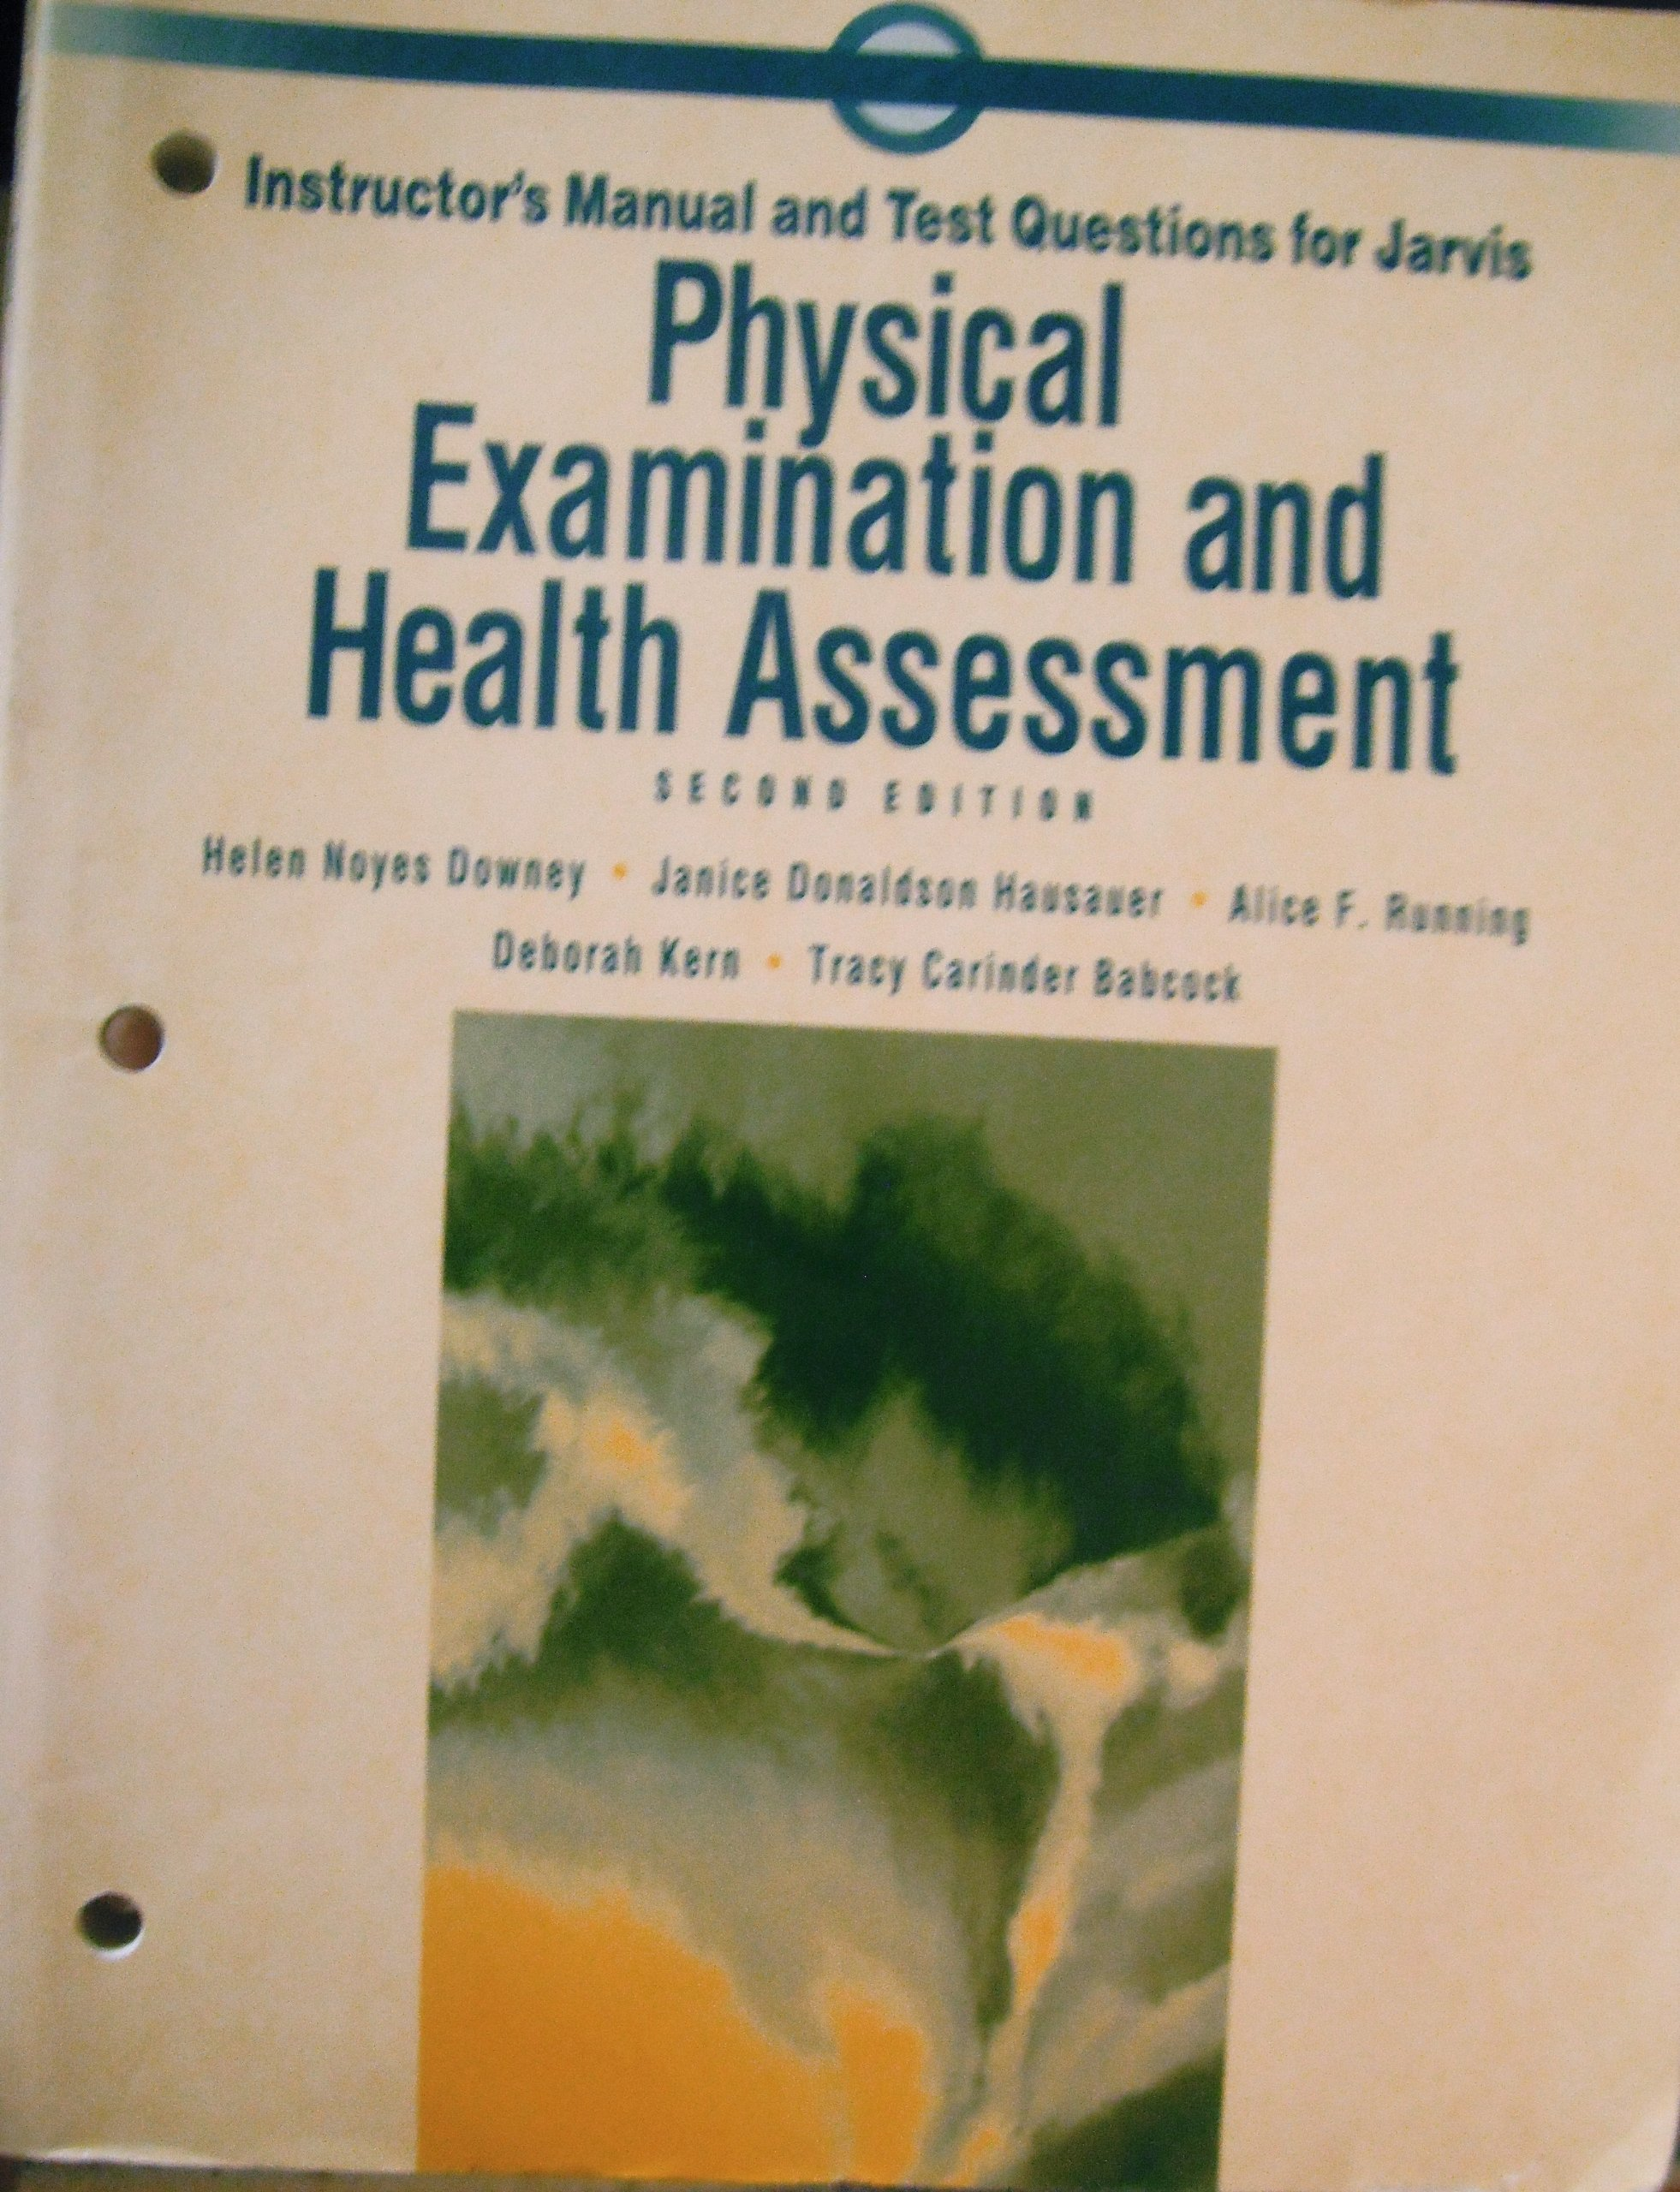 Instructor's Manual and test Questions for Jarvis Physical Examination and Health  Assessment: Helen Noyes Downey: Amazon.com: Books